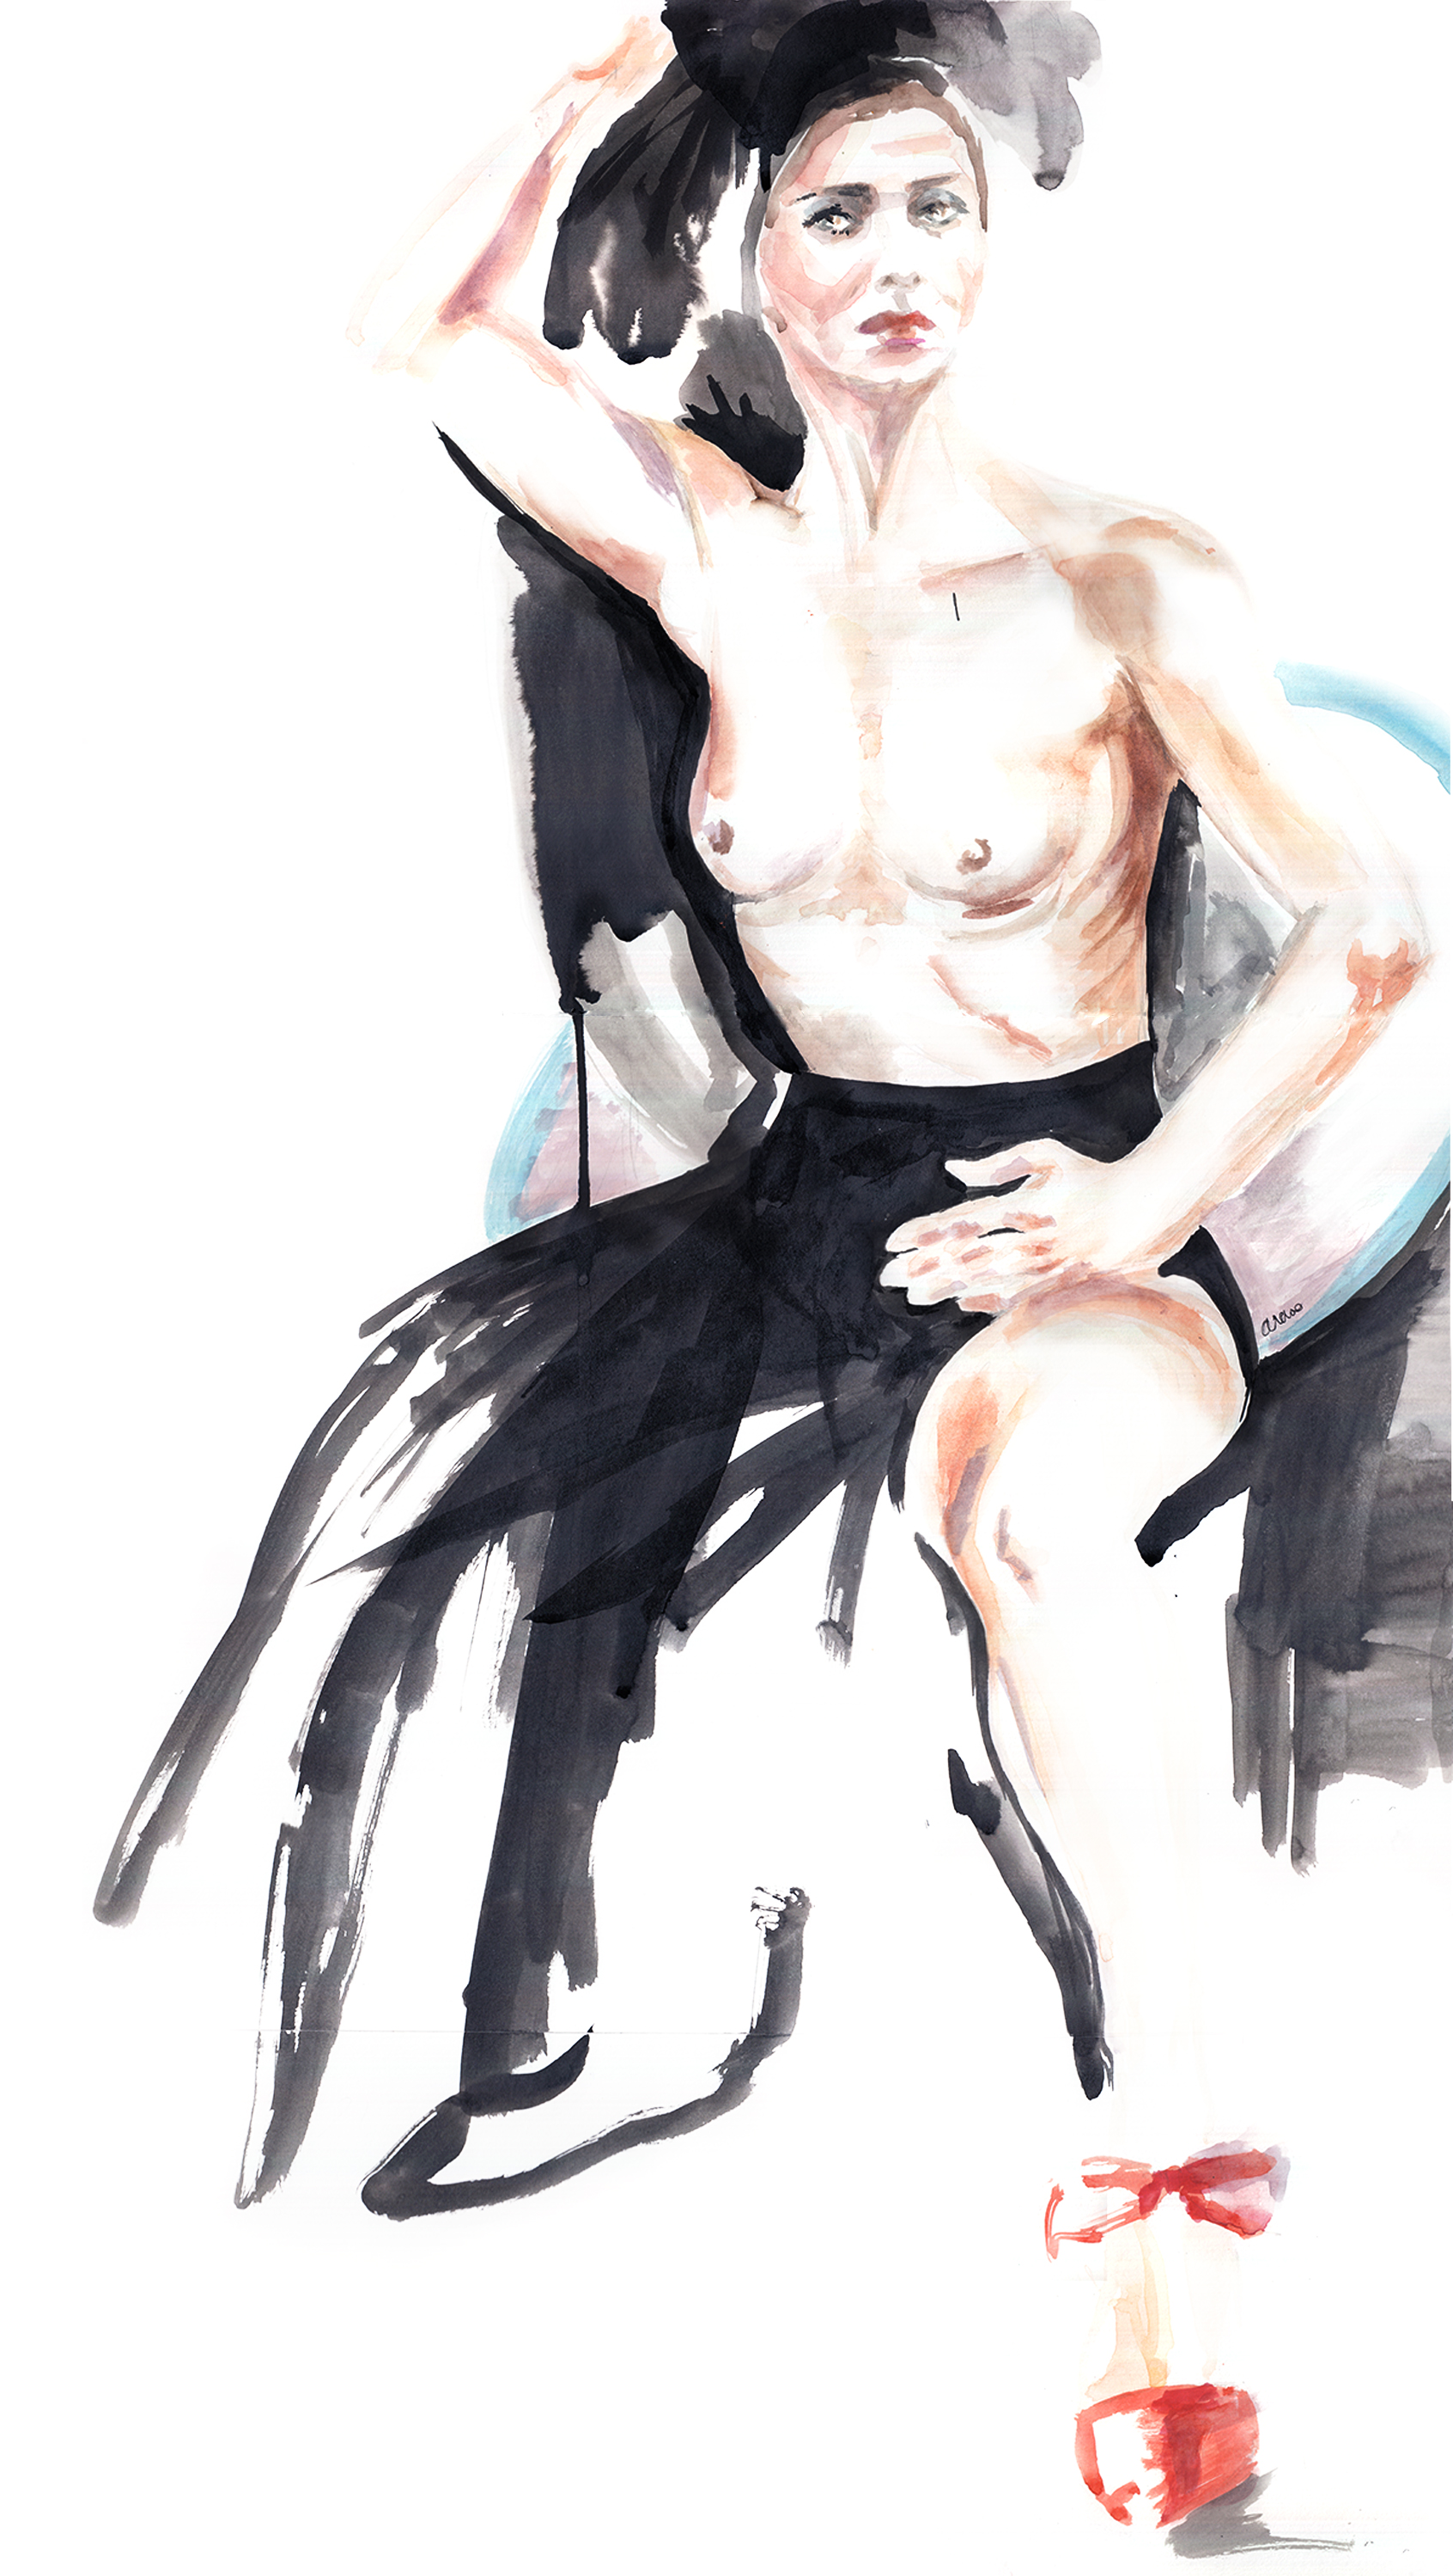 Flamenca Olga Pericet performing in Combourg, Festival Extension Sauvage, June 2017, watercolor by Araso